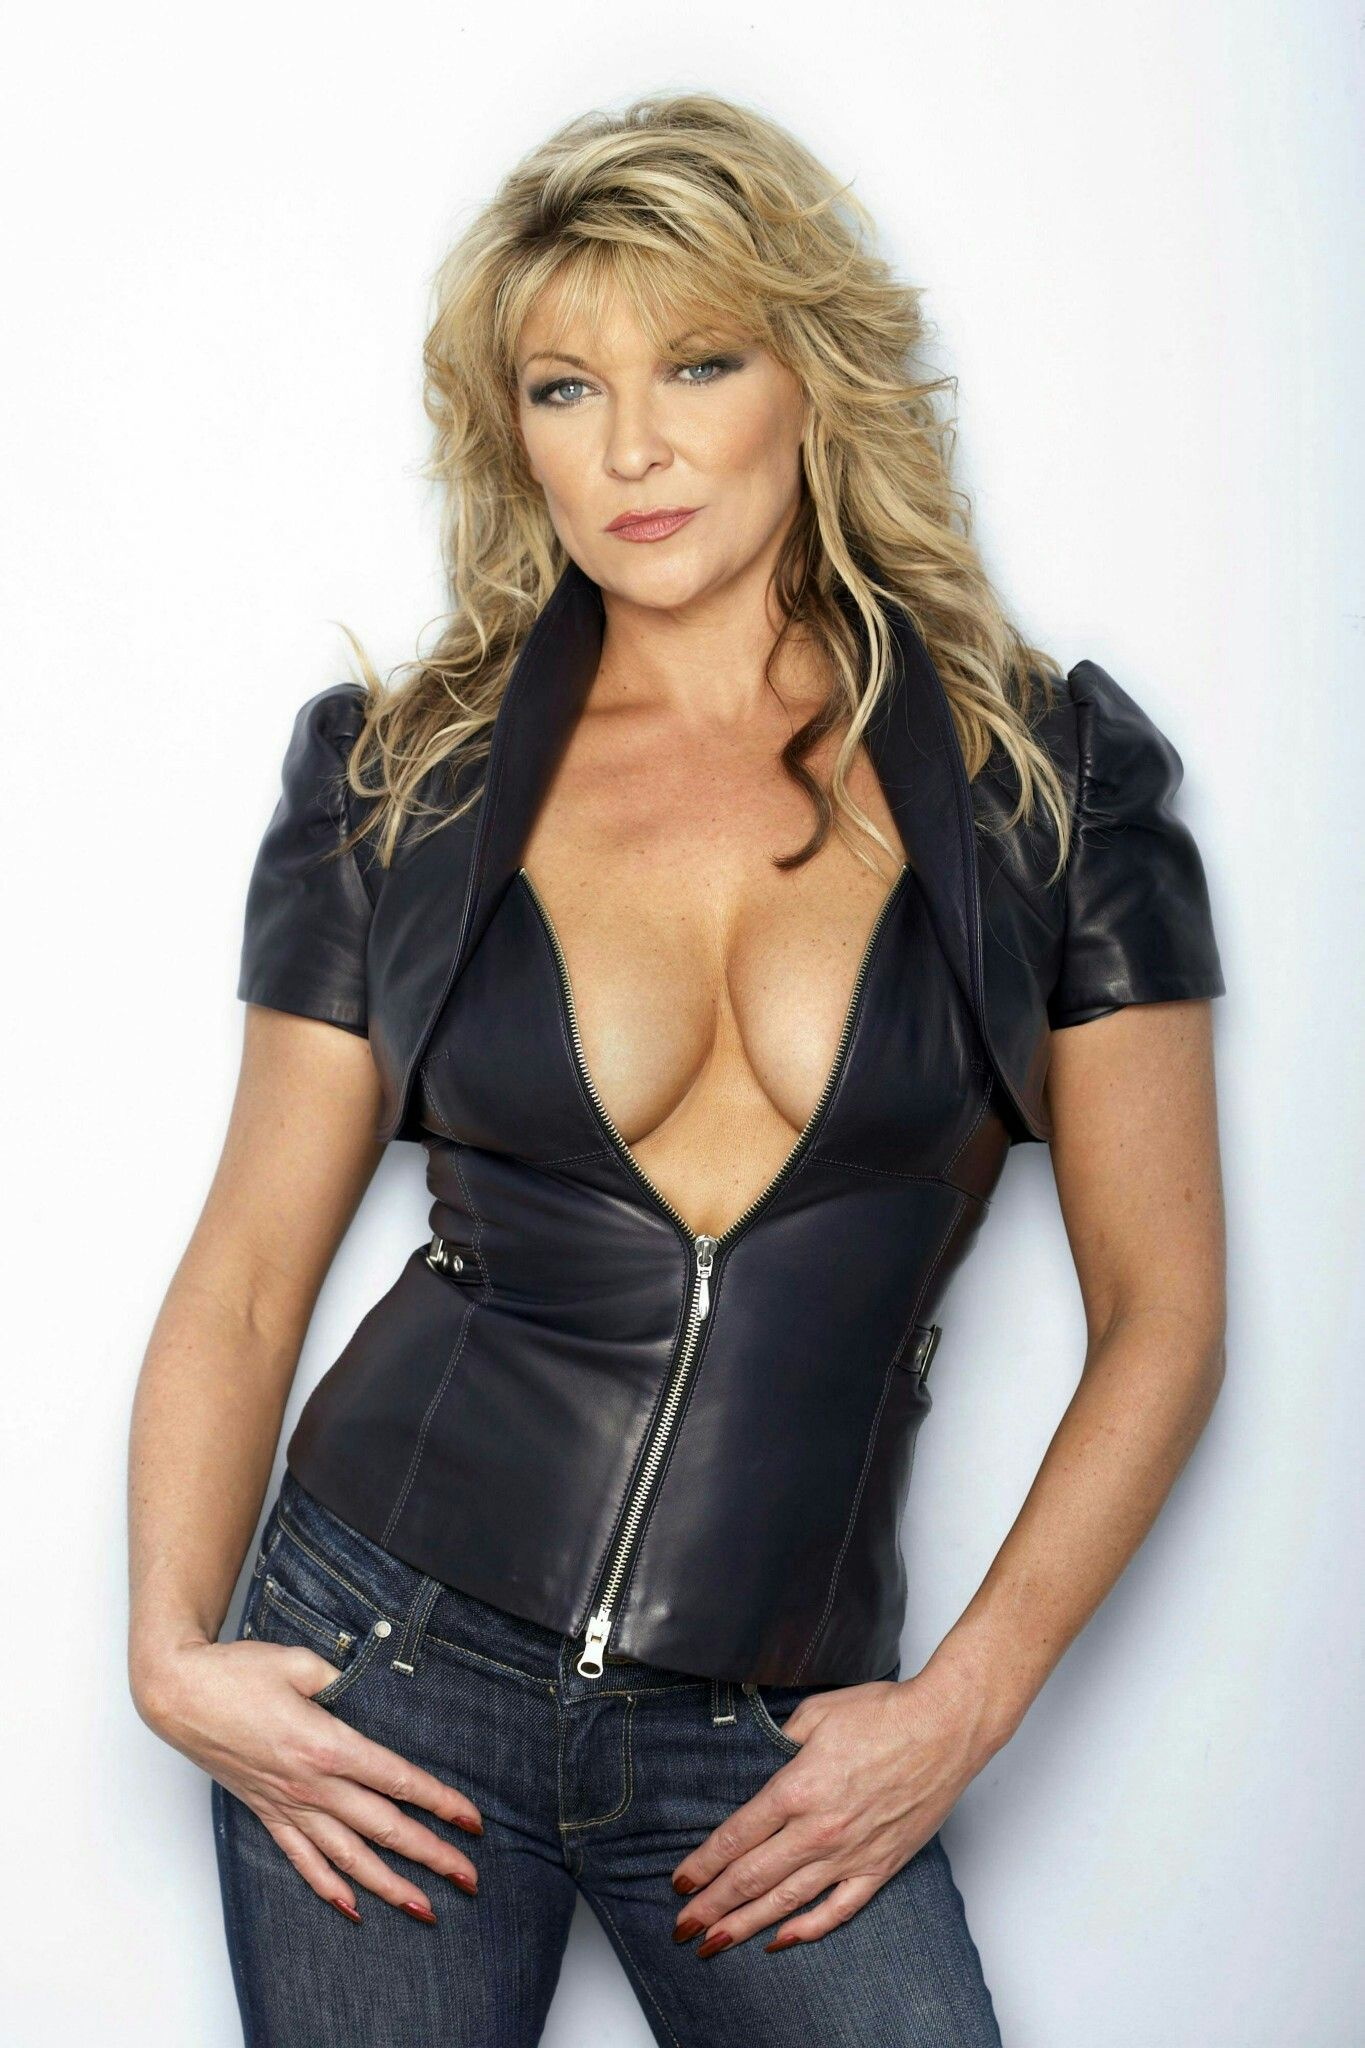 Image result for kim tate sexy